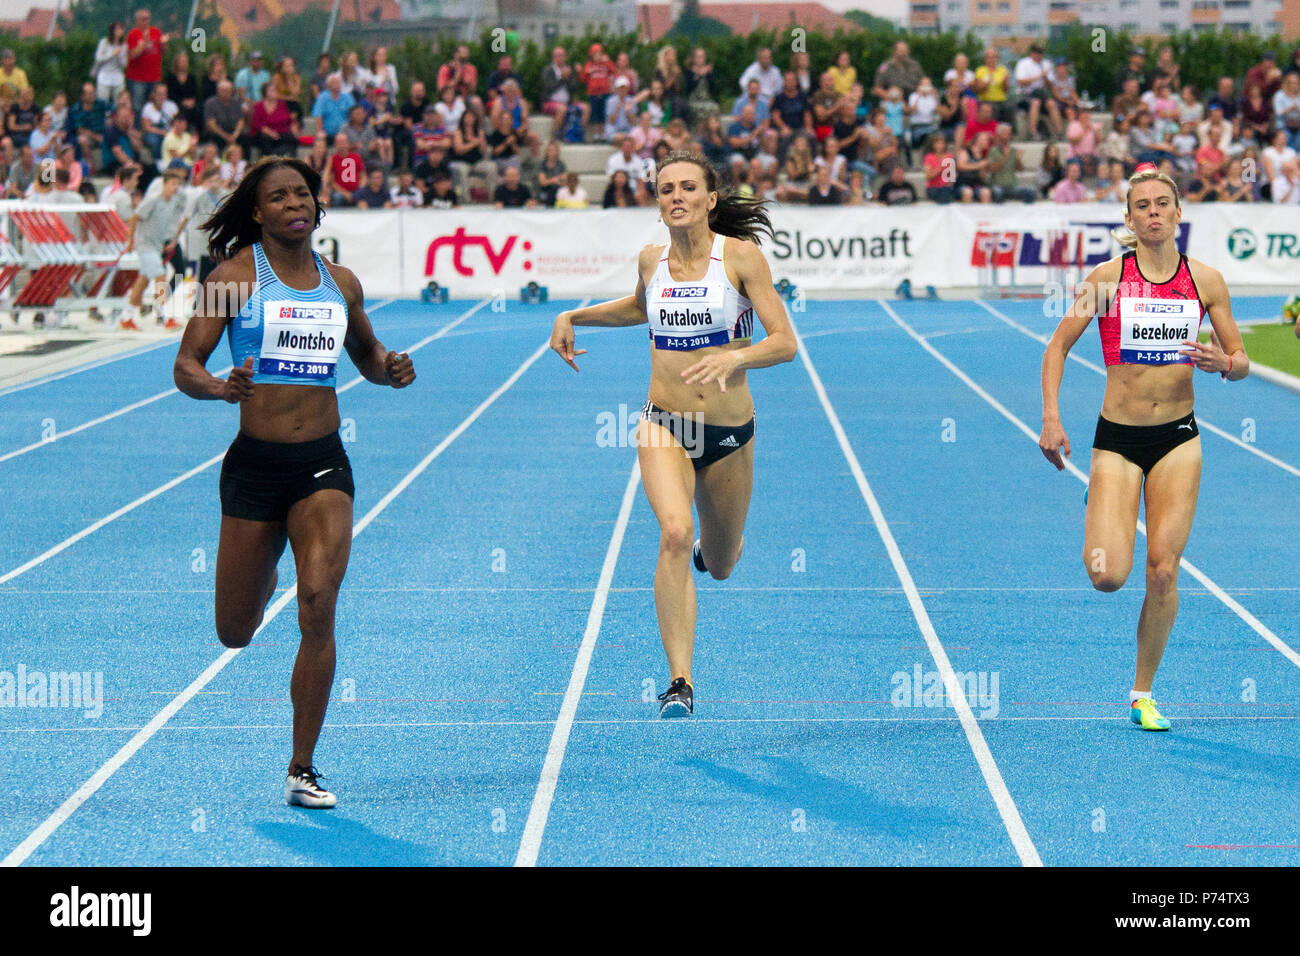 Women's 400 metre run at the P-T-S athletics meeting in the sports site of x-bionic sphere® in Šamorín, Slovakia - Stock Image